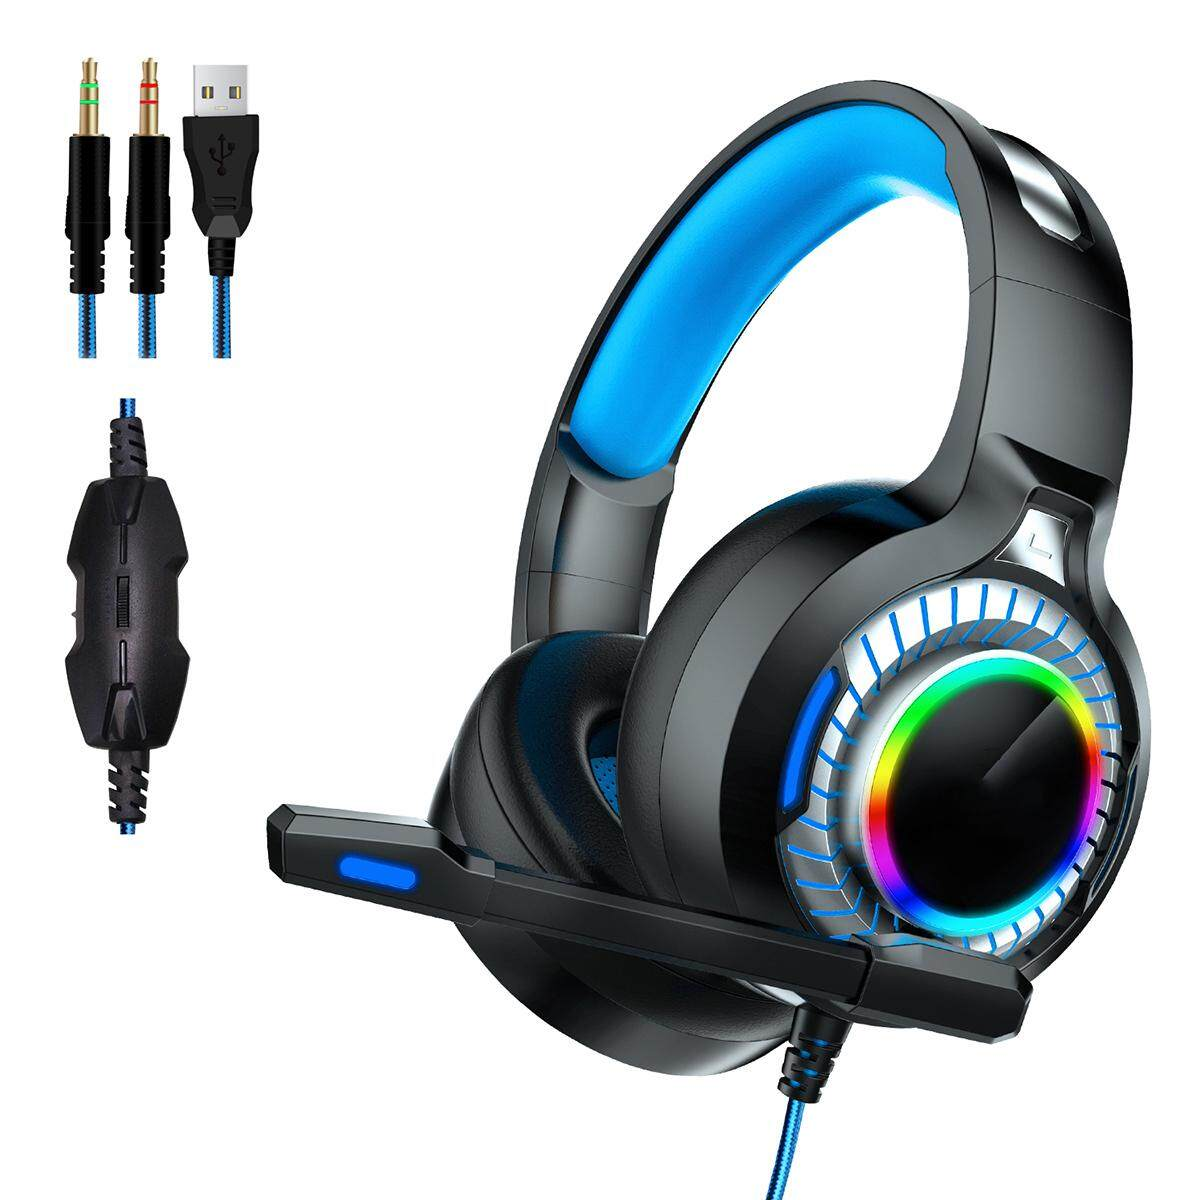 3 5mm 7 1USB Wired Stereo Game Headset Colorful LED Gaming Headphone 50mm  Driver